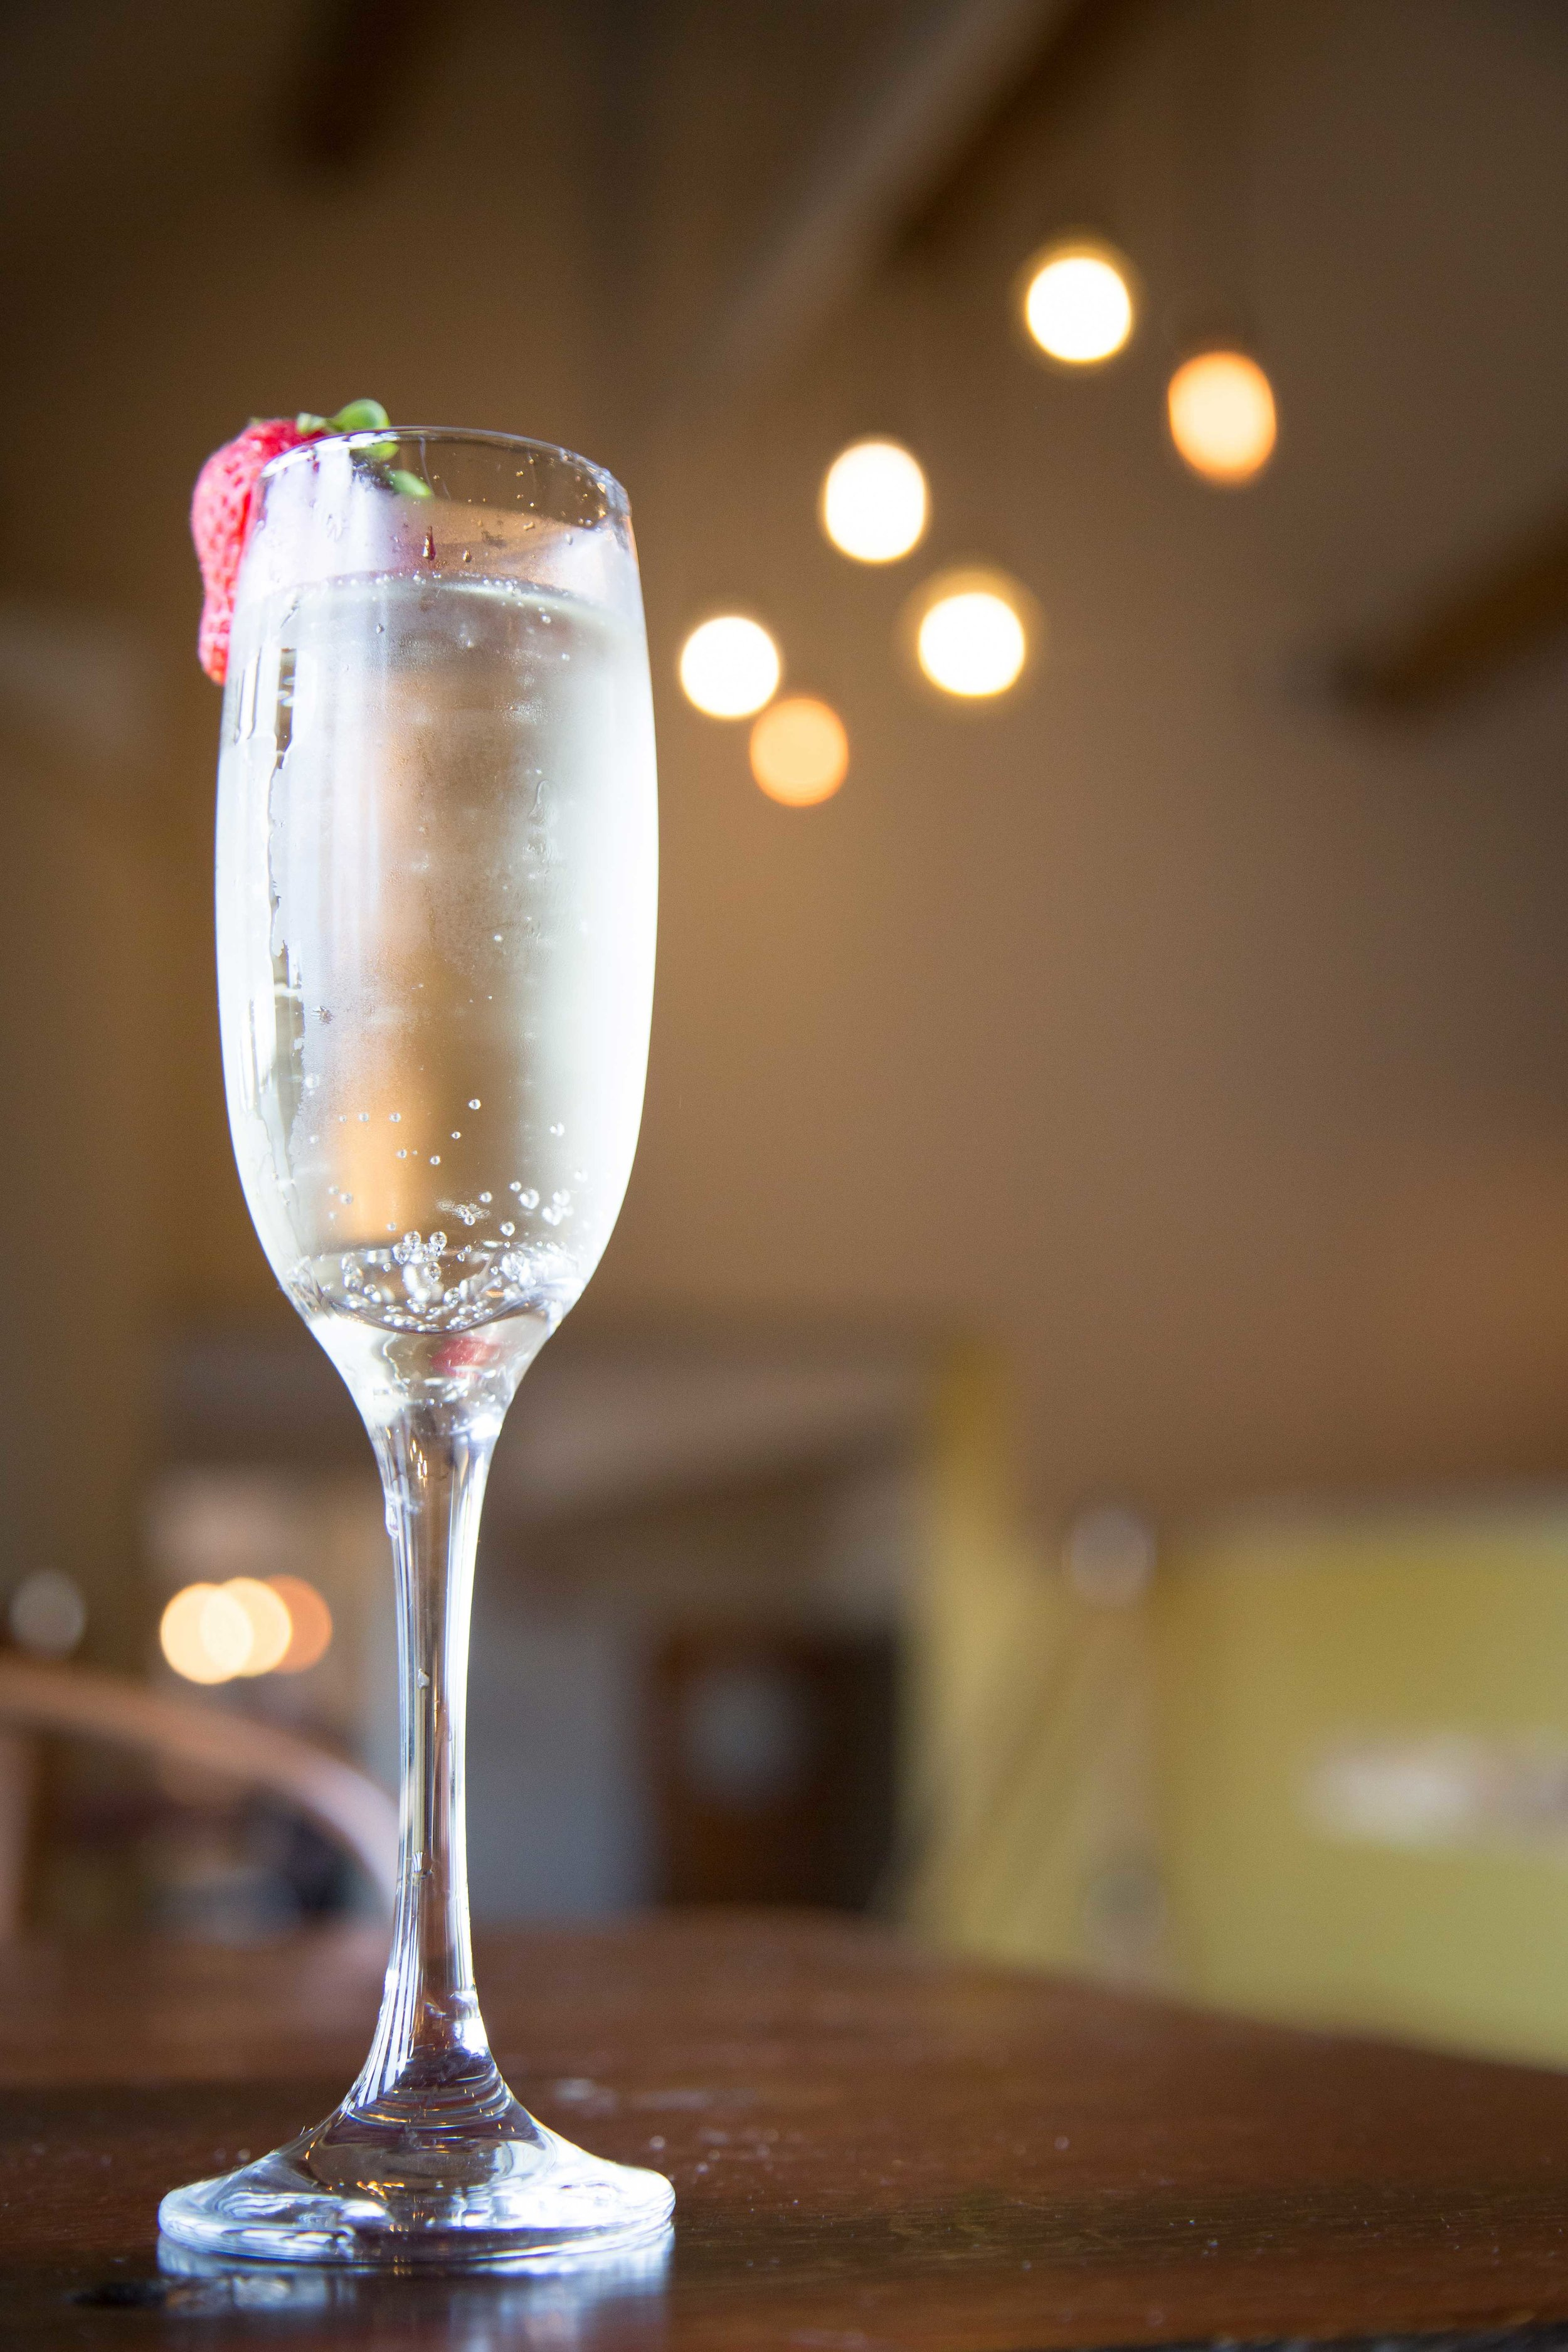 FREE BIRTHDAY PROSECCO OR BUDWEISER - DINE WITH US ON YOUR BIRTHDAY AND WE'LL CELEBRATE WITH YOU BY GIVING YOU A FREE BOTTLE OF PROSECCO OR A BUCKET OF 4 BOTTLES OF BUDWEISER ON US!You've got to dine with at least one other person to get the offer, both paying full price for main courses - and it's got to be on your birthday! Valid ID will be required. Cannot be used in conjunction with any other offer. Quote BIRTHDAY when booking a table.DOWNLOAD A VOUCHER TO BRING WITH YOU